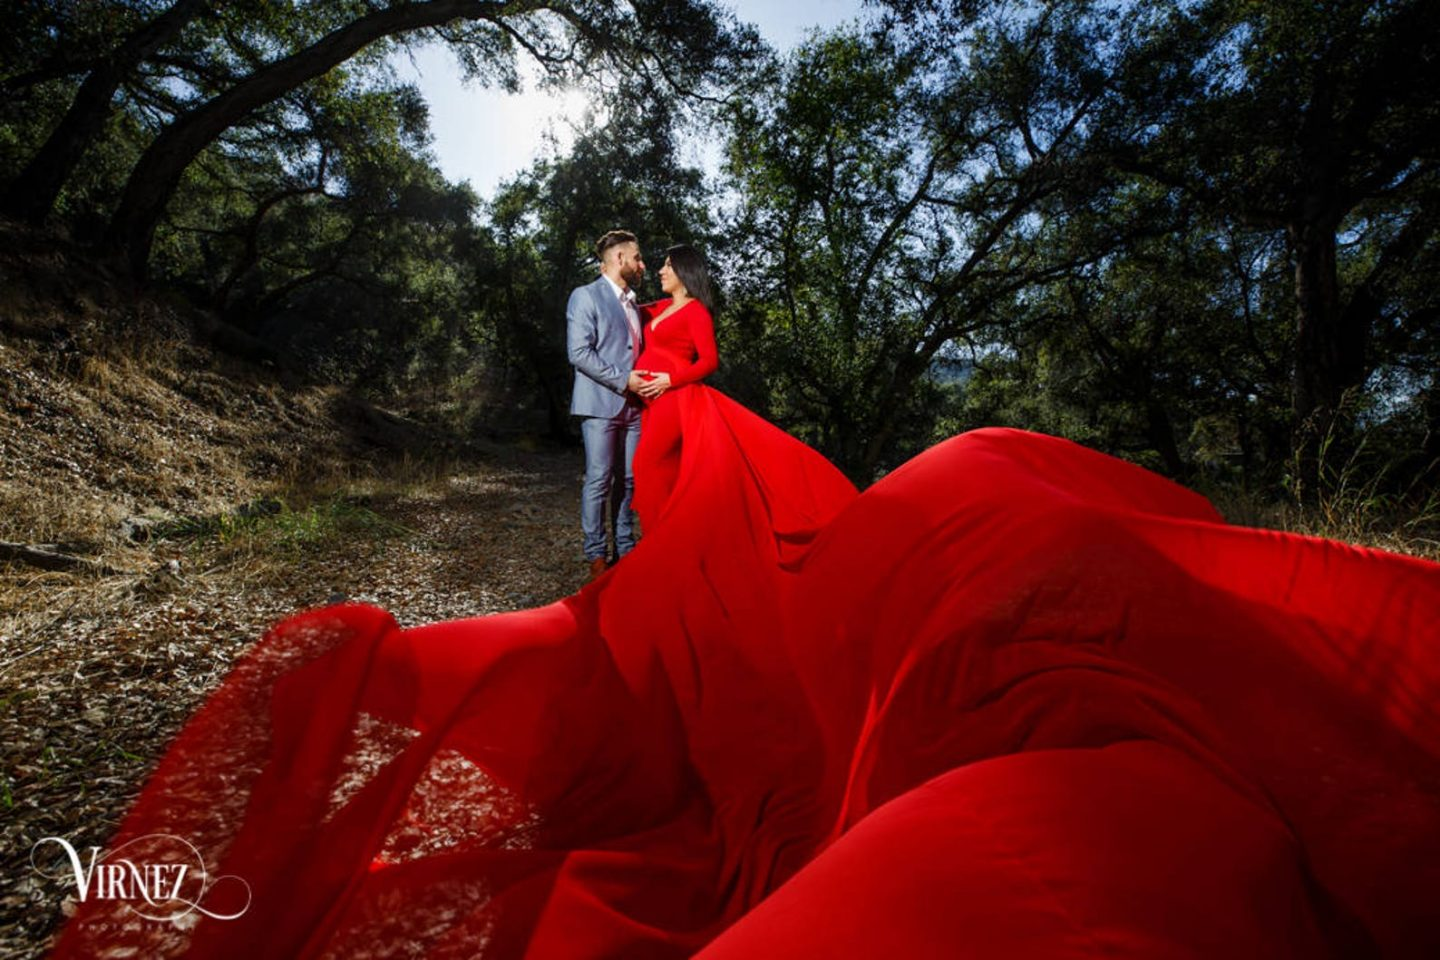 Red infinity gown for maternity photos